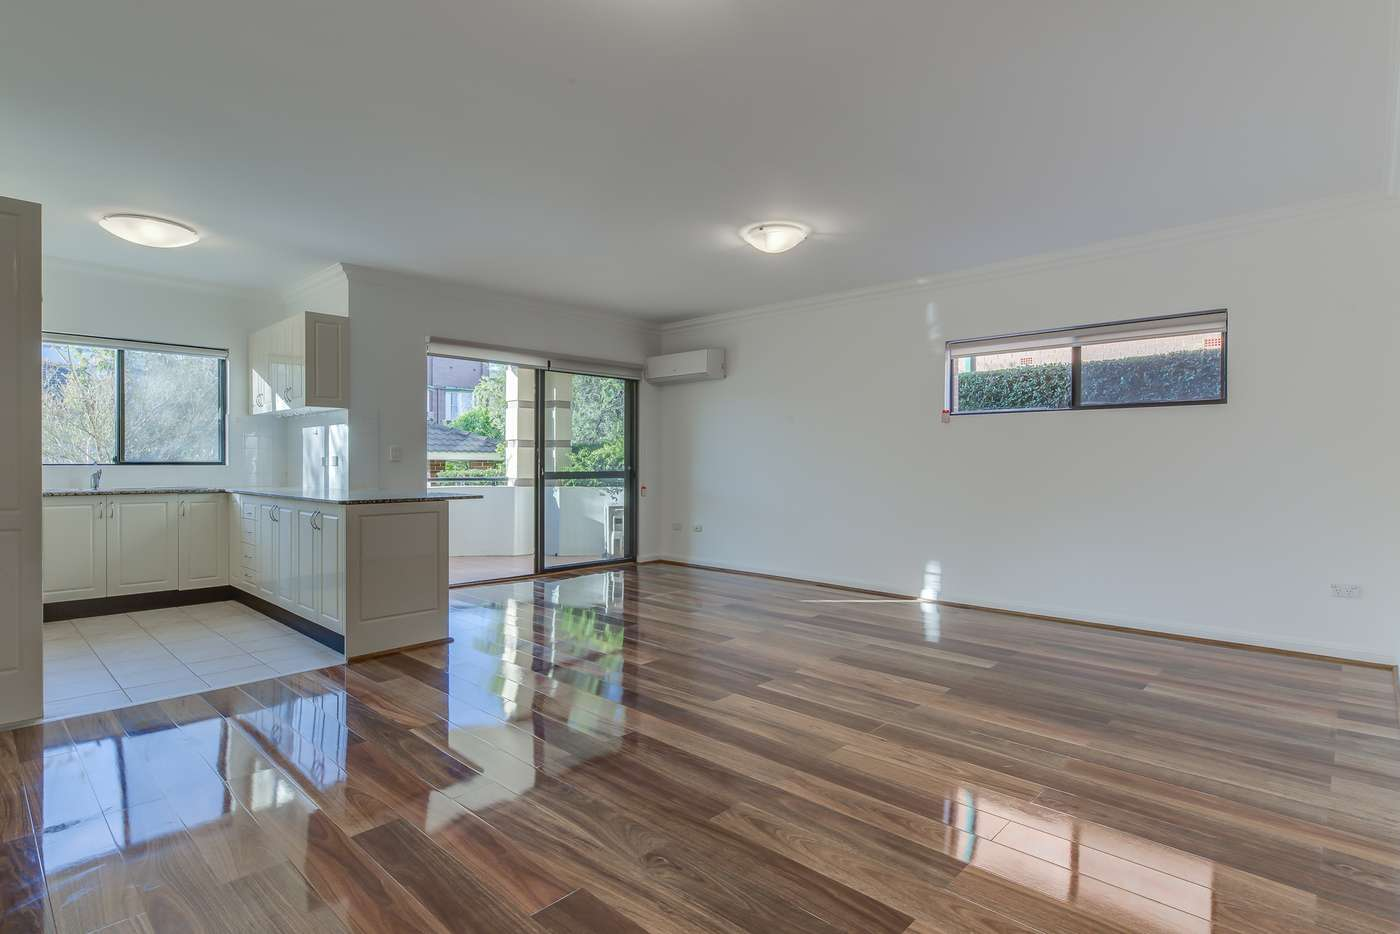 Main view of Homely apartment listing, 1/22 Bridge Street, Epping NSW 2121